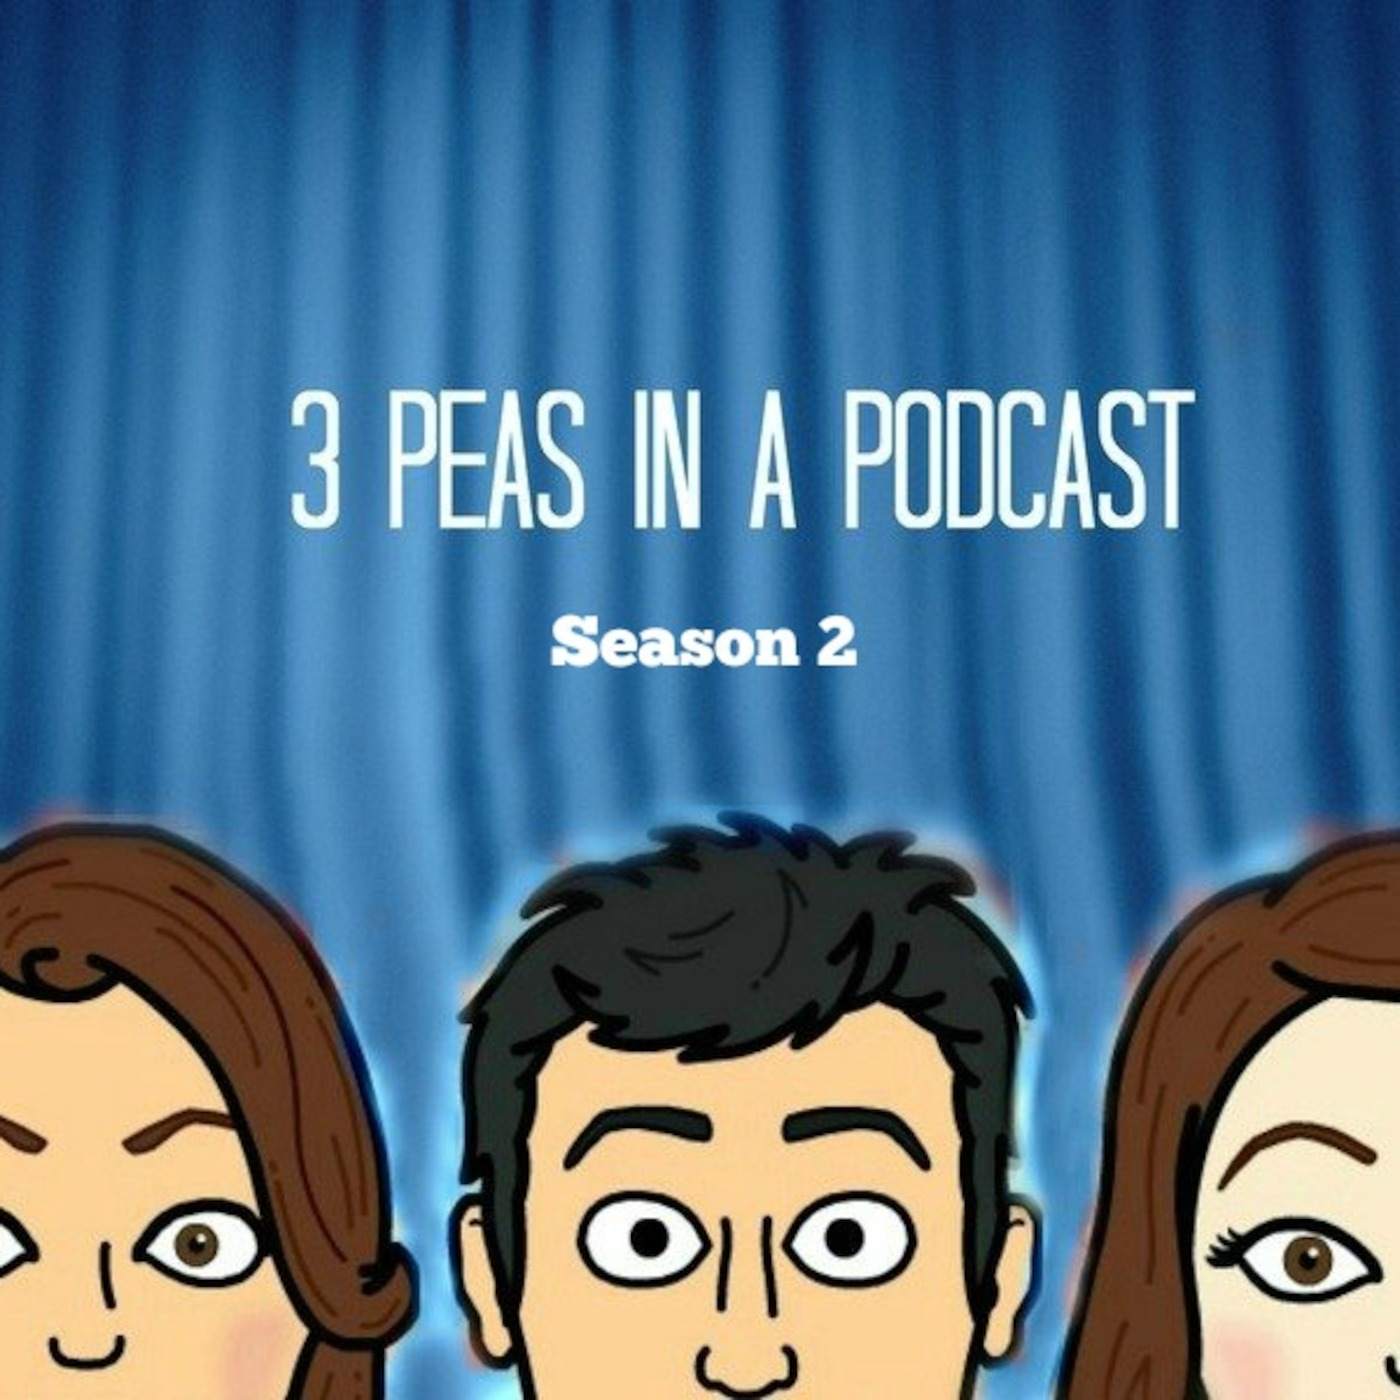 3 Peas In A Podcast: Season 2